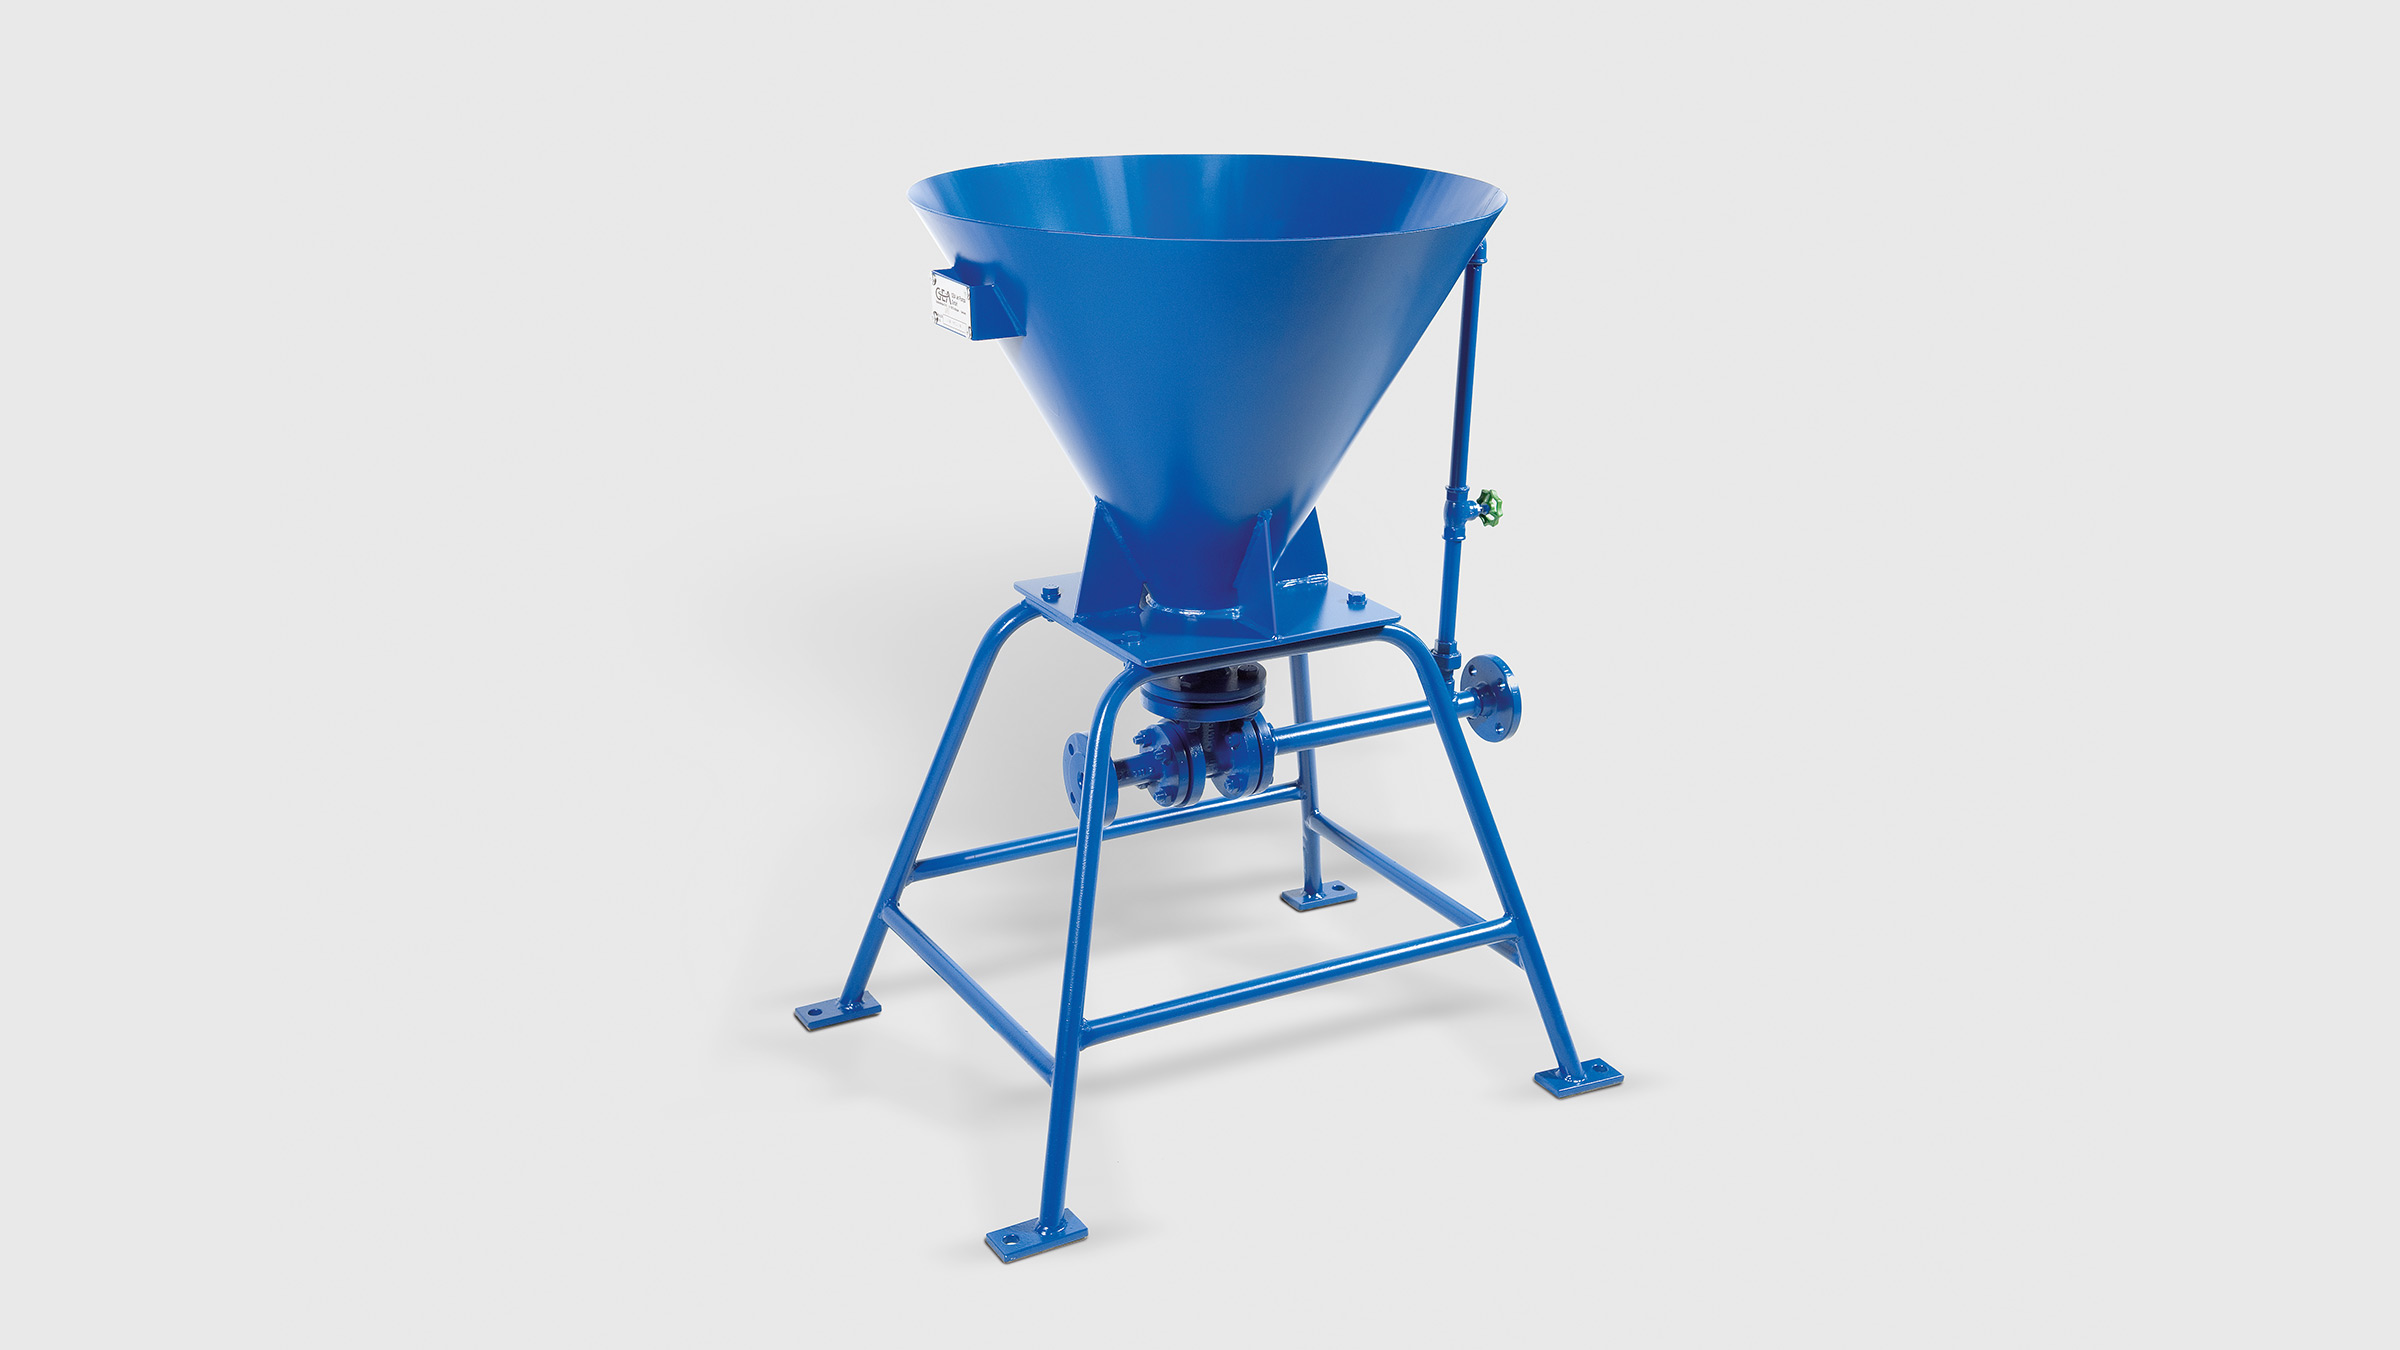 Stantionary liquid jet solids pump